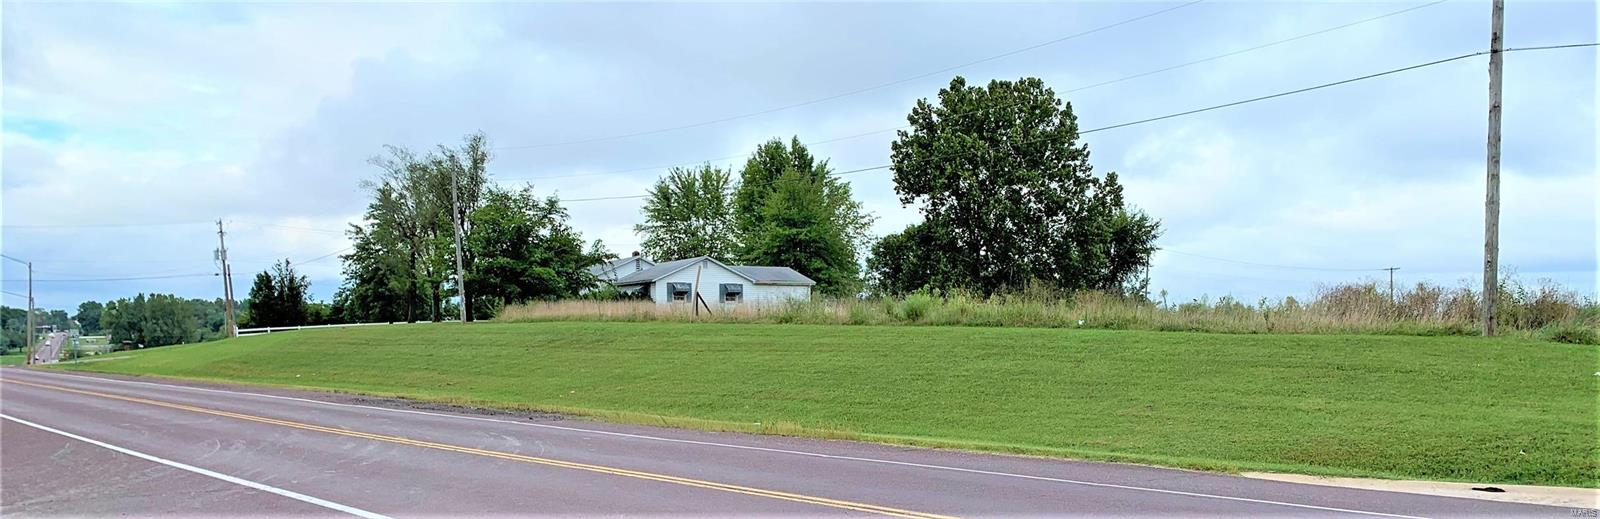 466 S Lincoln Drive Property Photo - Troy, MO real estate listing